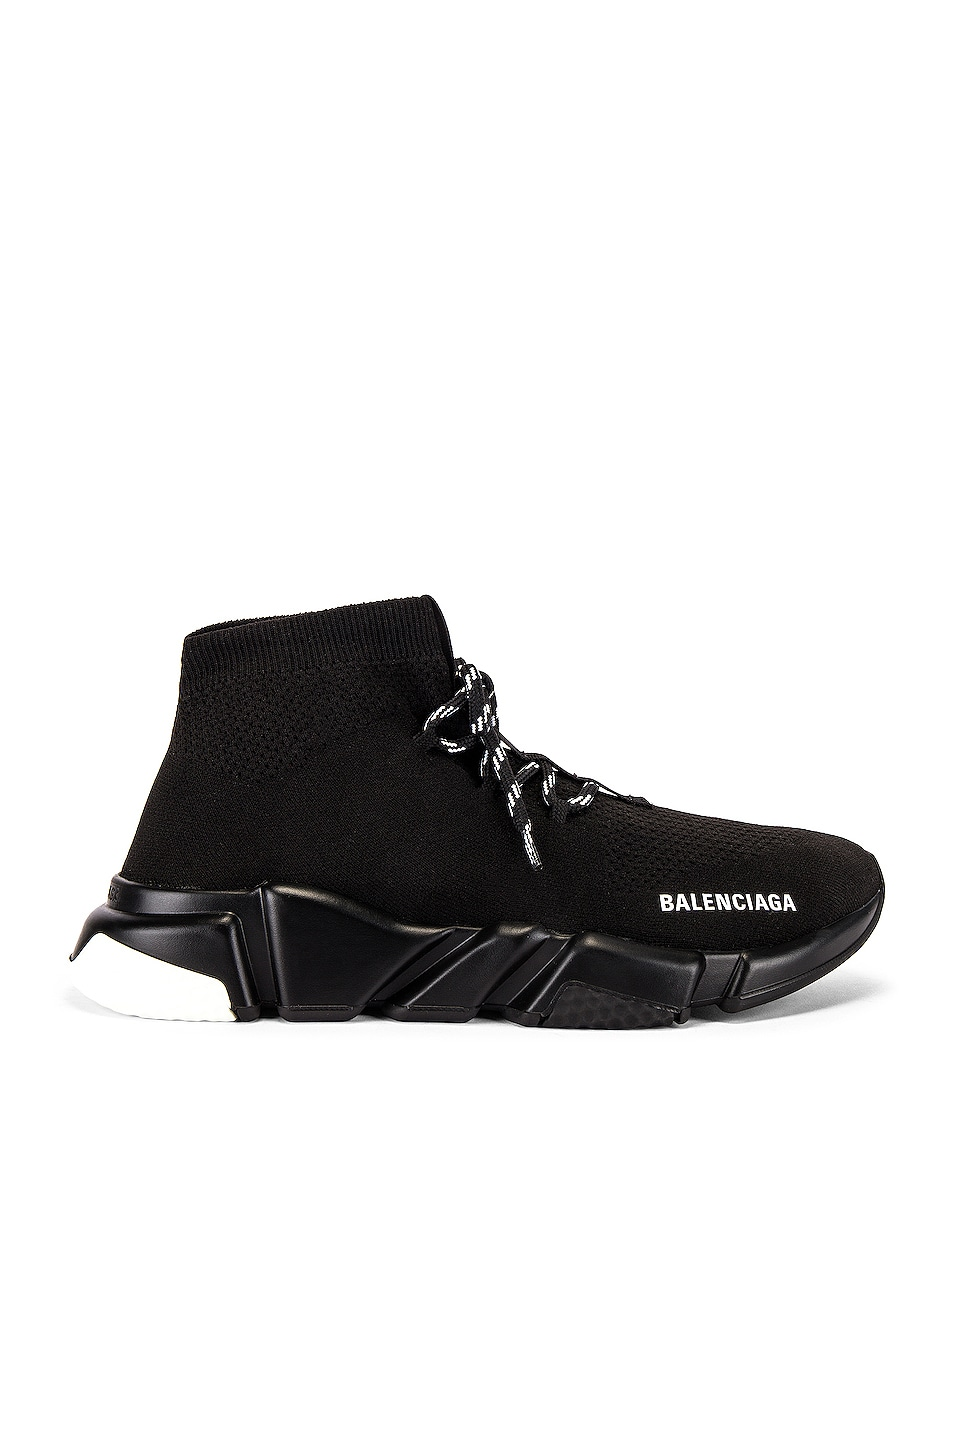 Image 2 of Balenciaga Speed Light Lace-Up Sneaker in Black